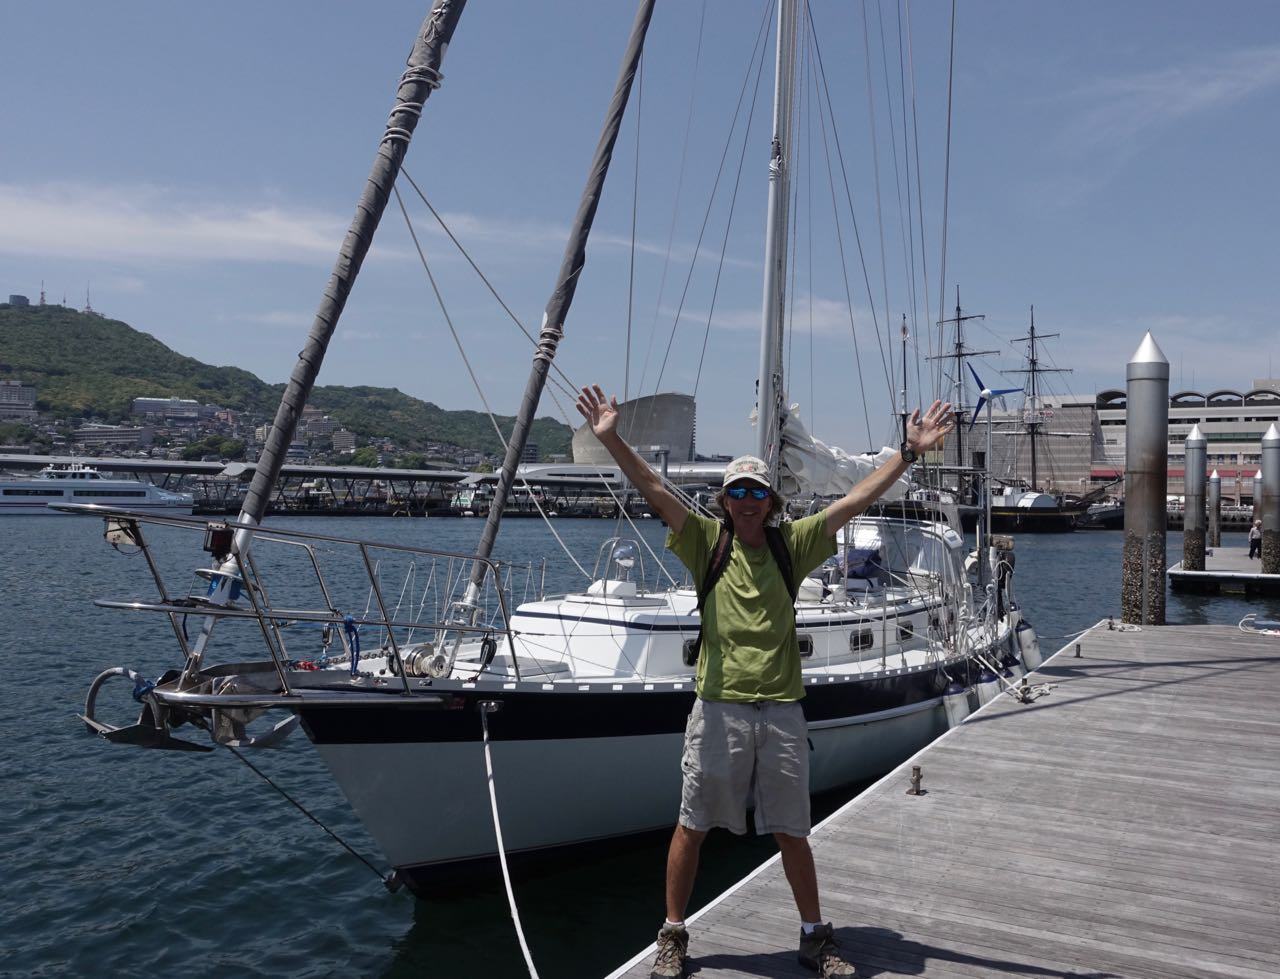 Douglas and Tumbleweed at Dejima Marina with a bit of Nagasaki in the background.